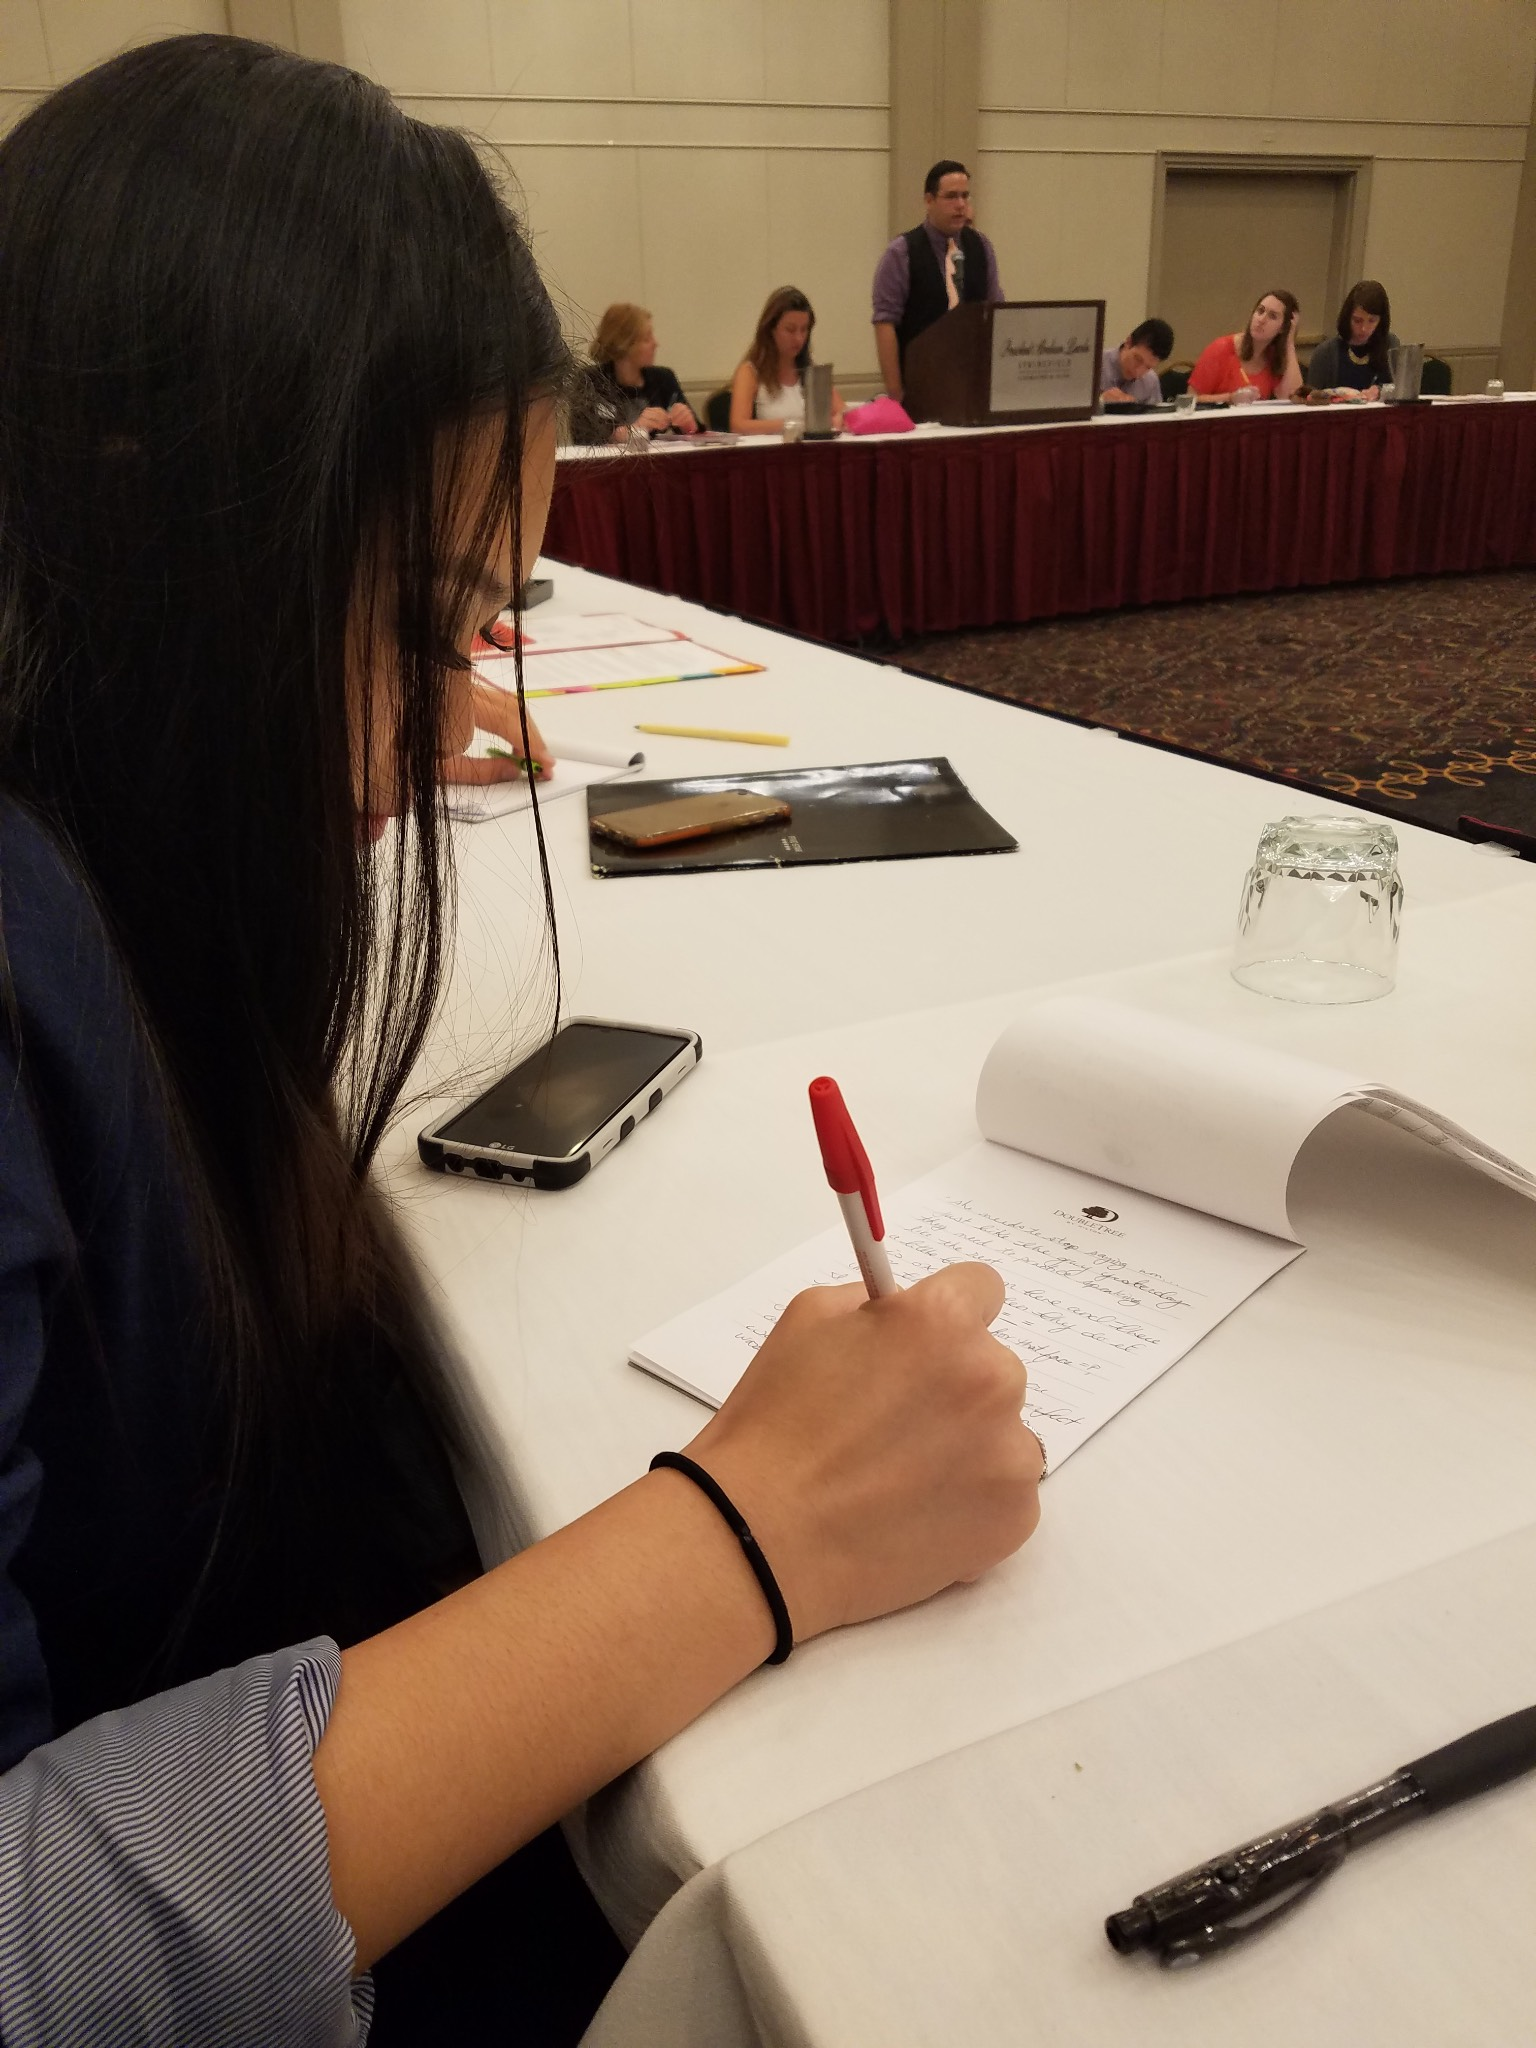 10 things to know about kathleen duong, jjc student trustee listening to jjc student concerns